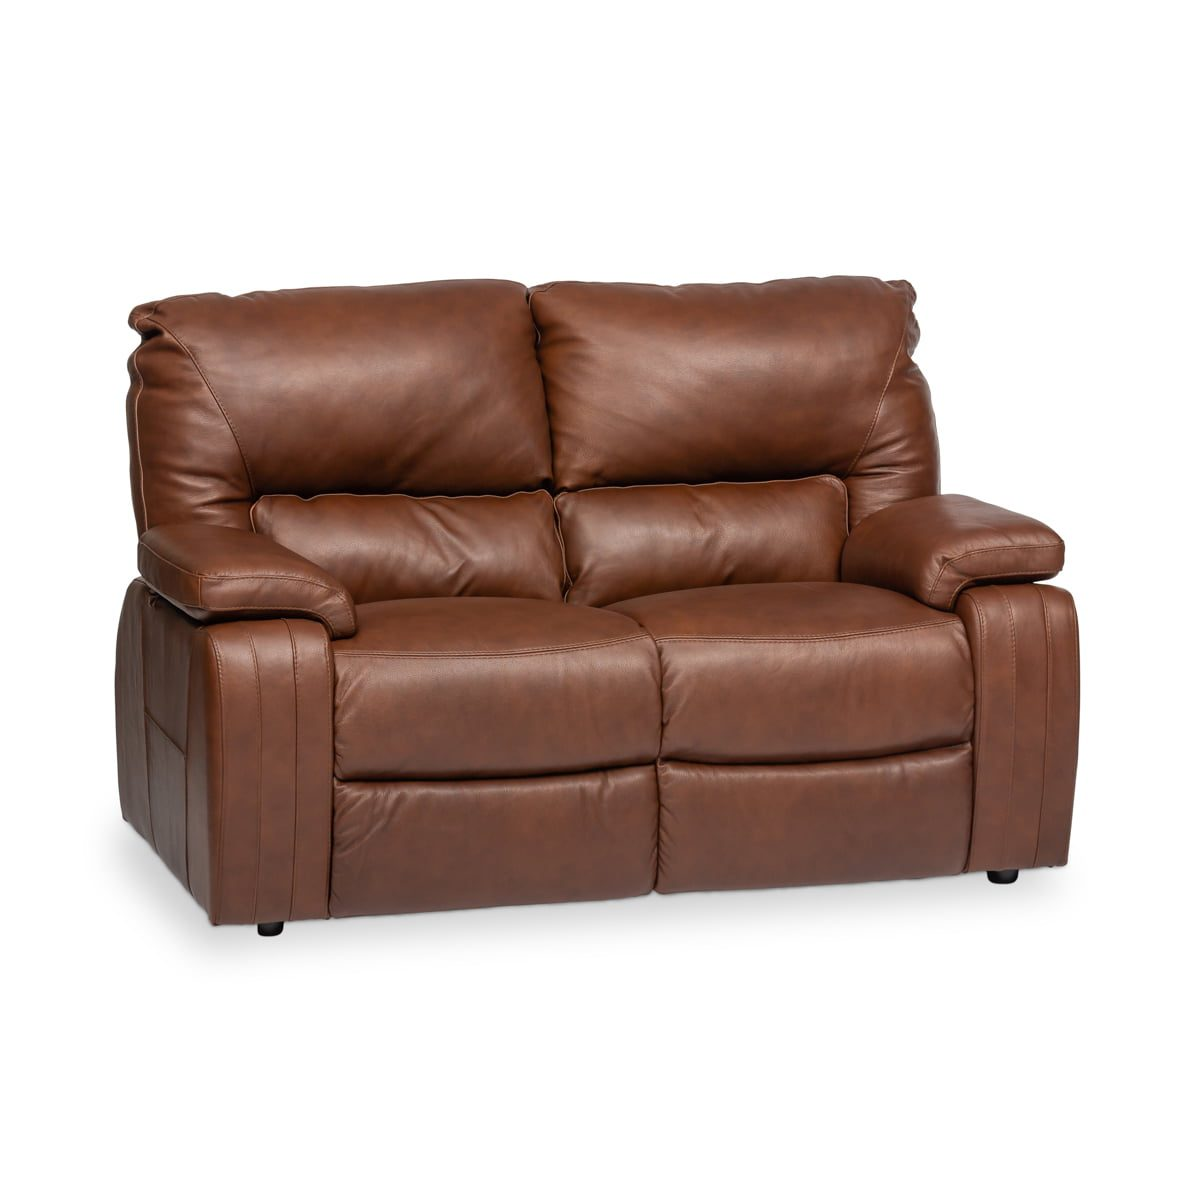 Amerigo Leather 2 Seater